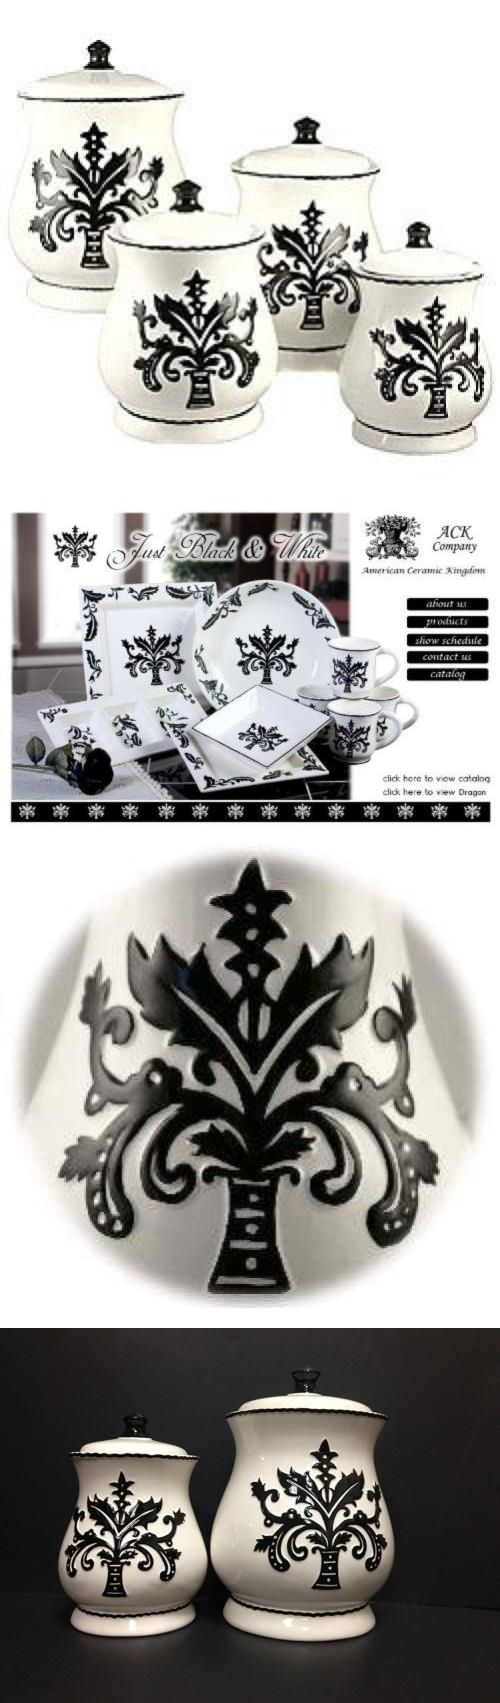 best 25 ceramic canister set ideas on pinterest canisters canisters and jars 20654 tuscany fleur de lis just black and white ceramic 4